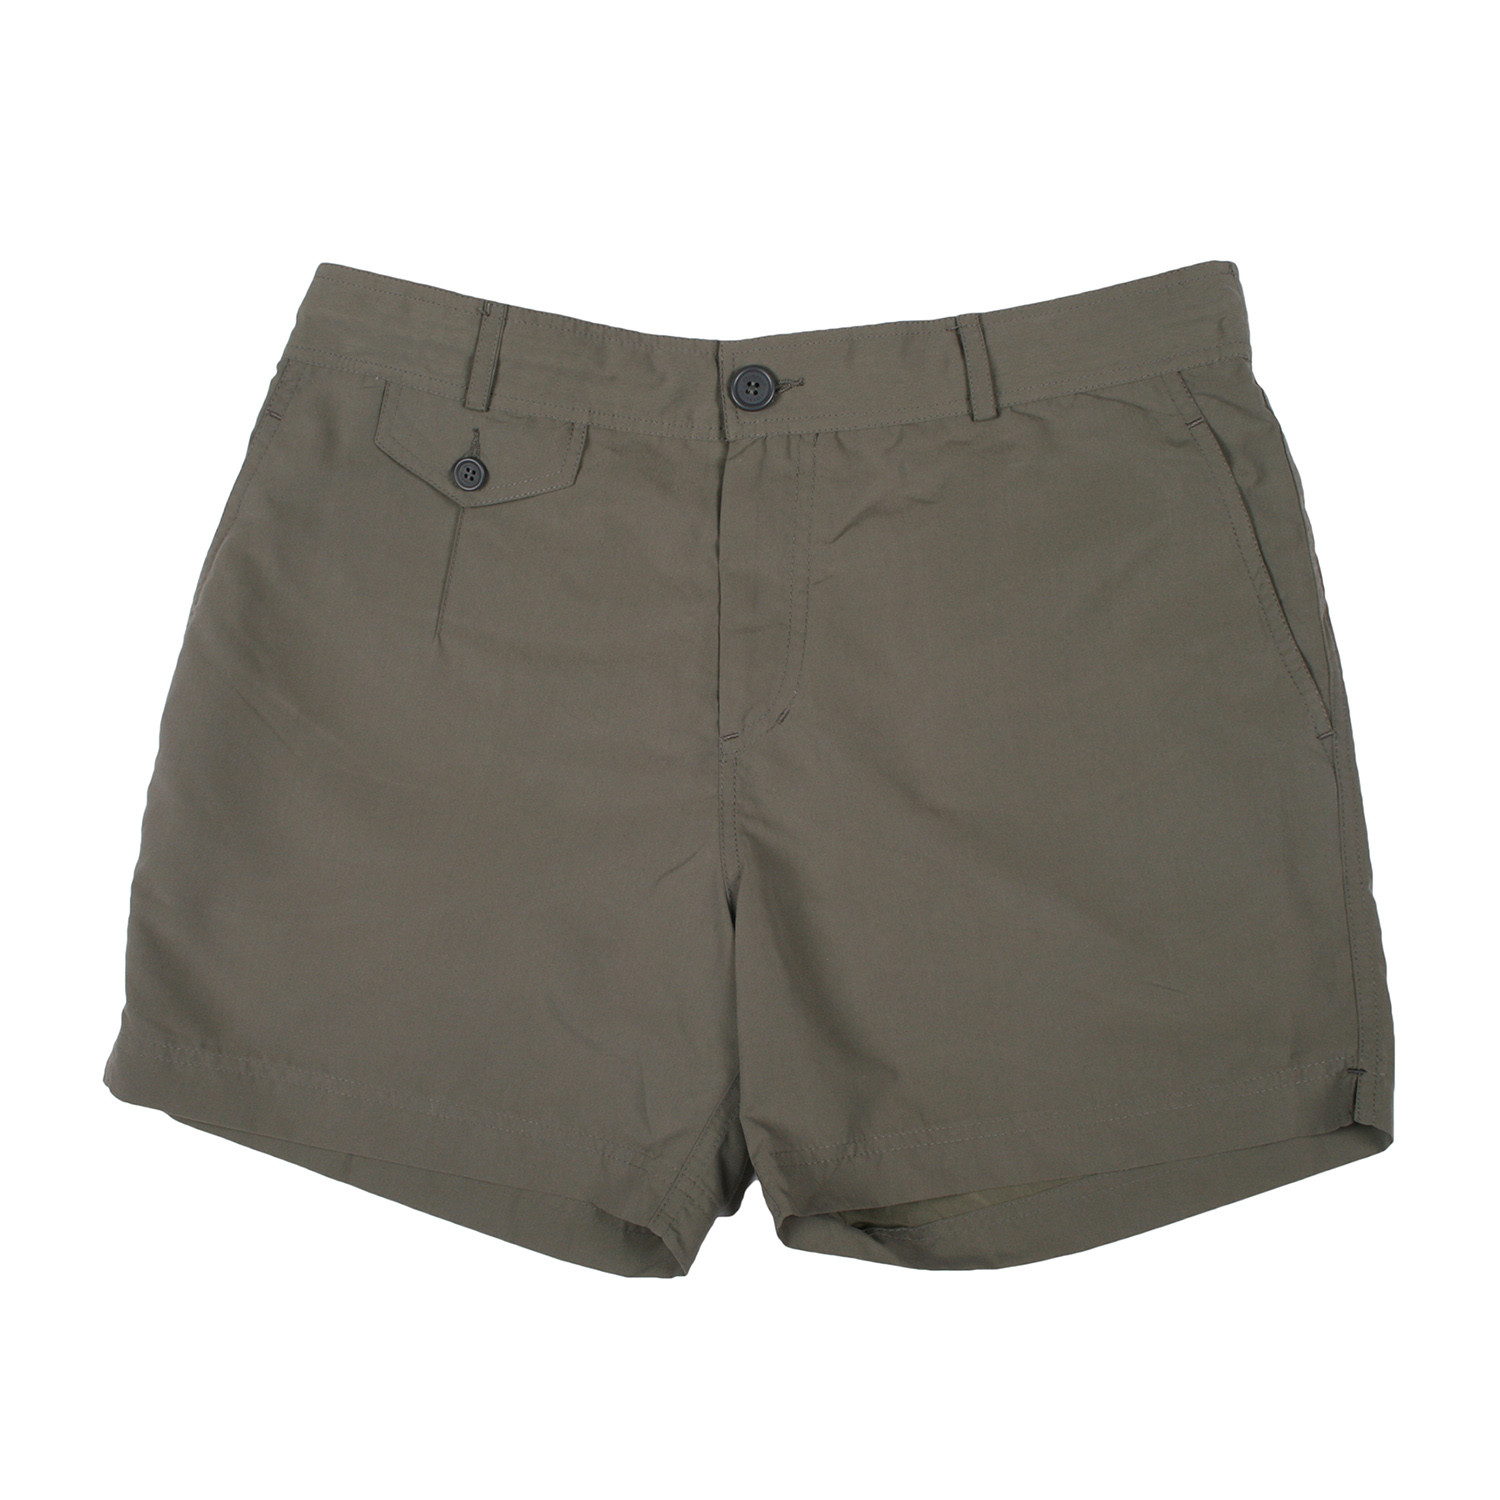 331f383aa88fc Swim Shorts // Olive (48) - Brunello Cucinelli - Touch of Modern